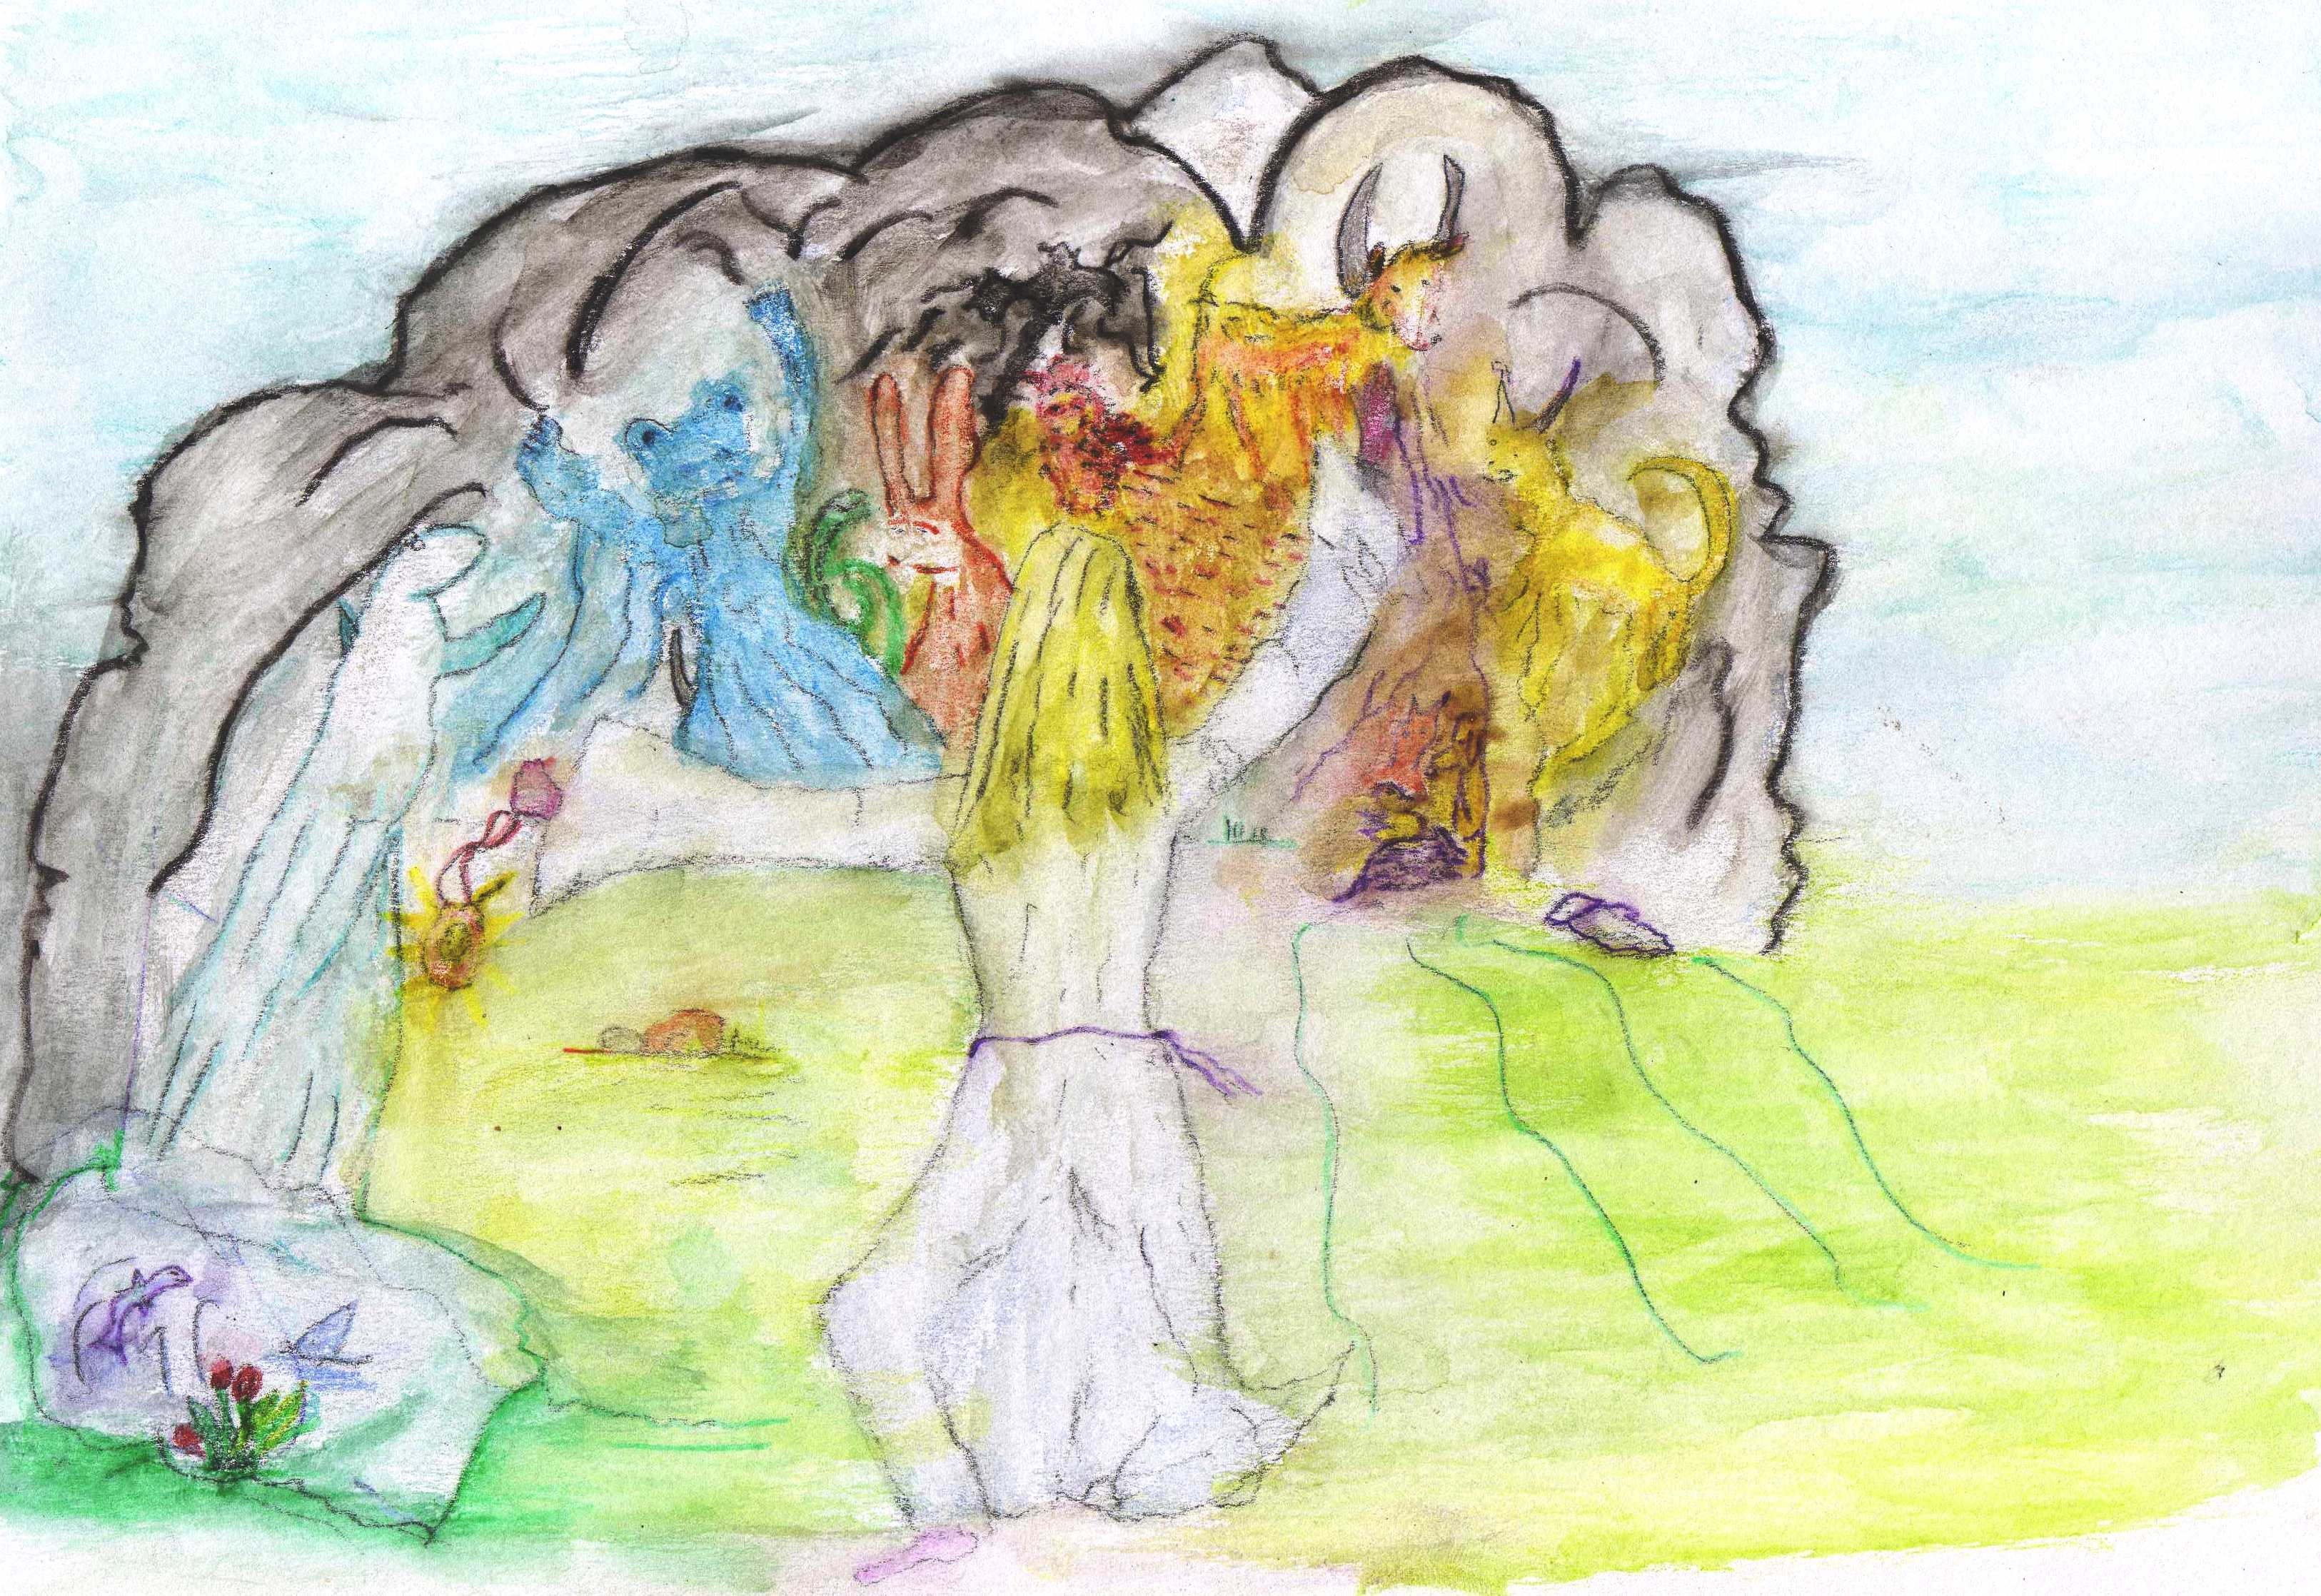 creature spirits alarmed 02 coloured